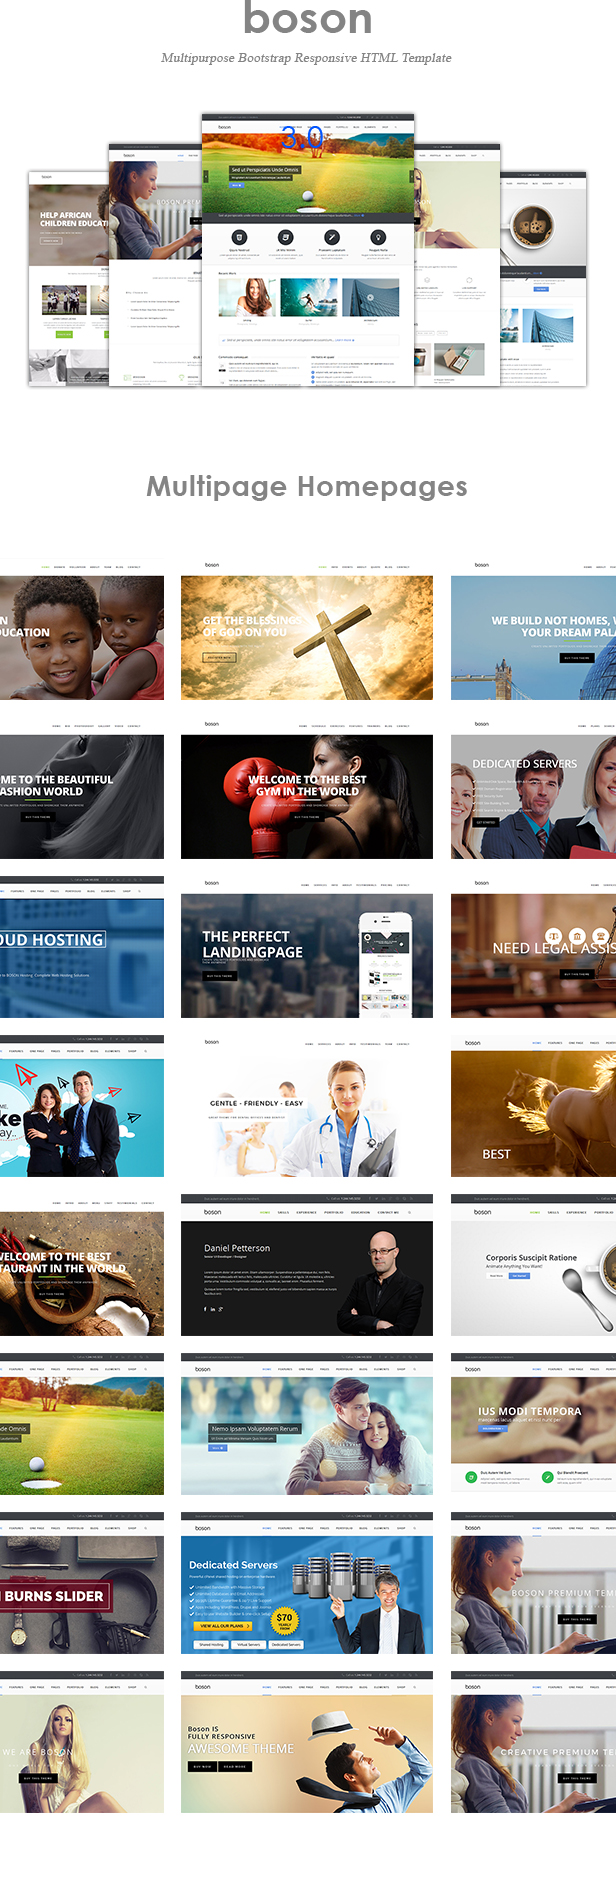 boson 3.0 live now responsive multipurpose html template